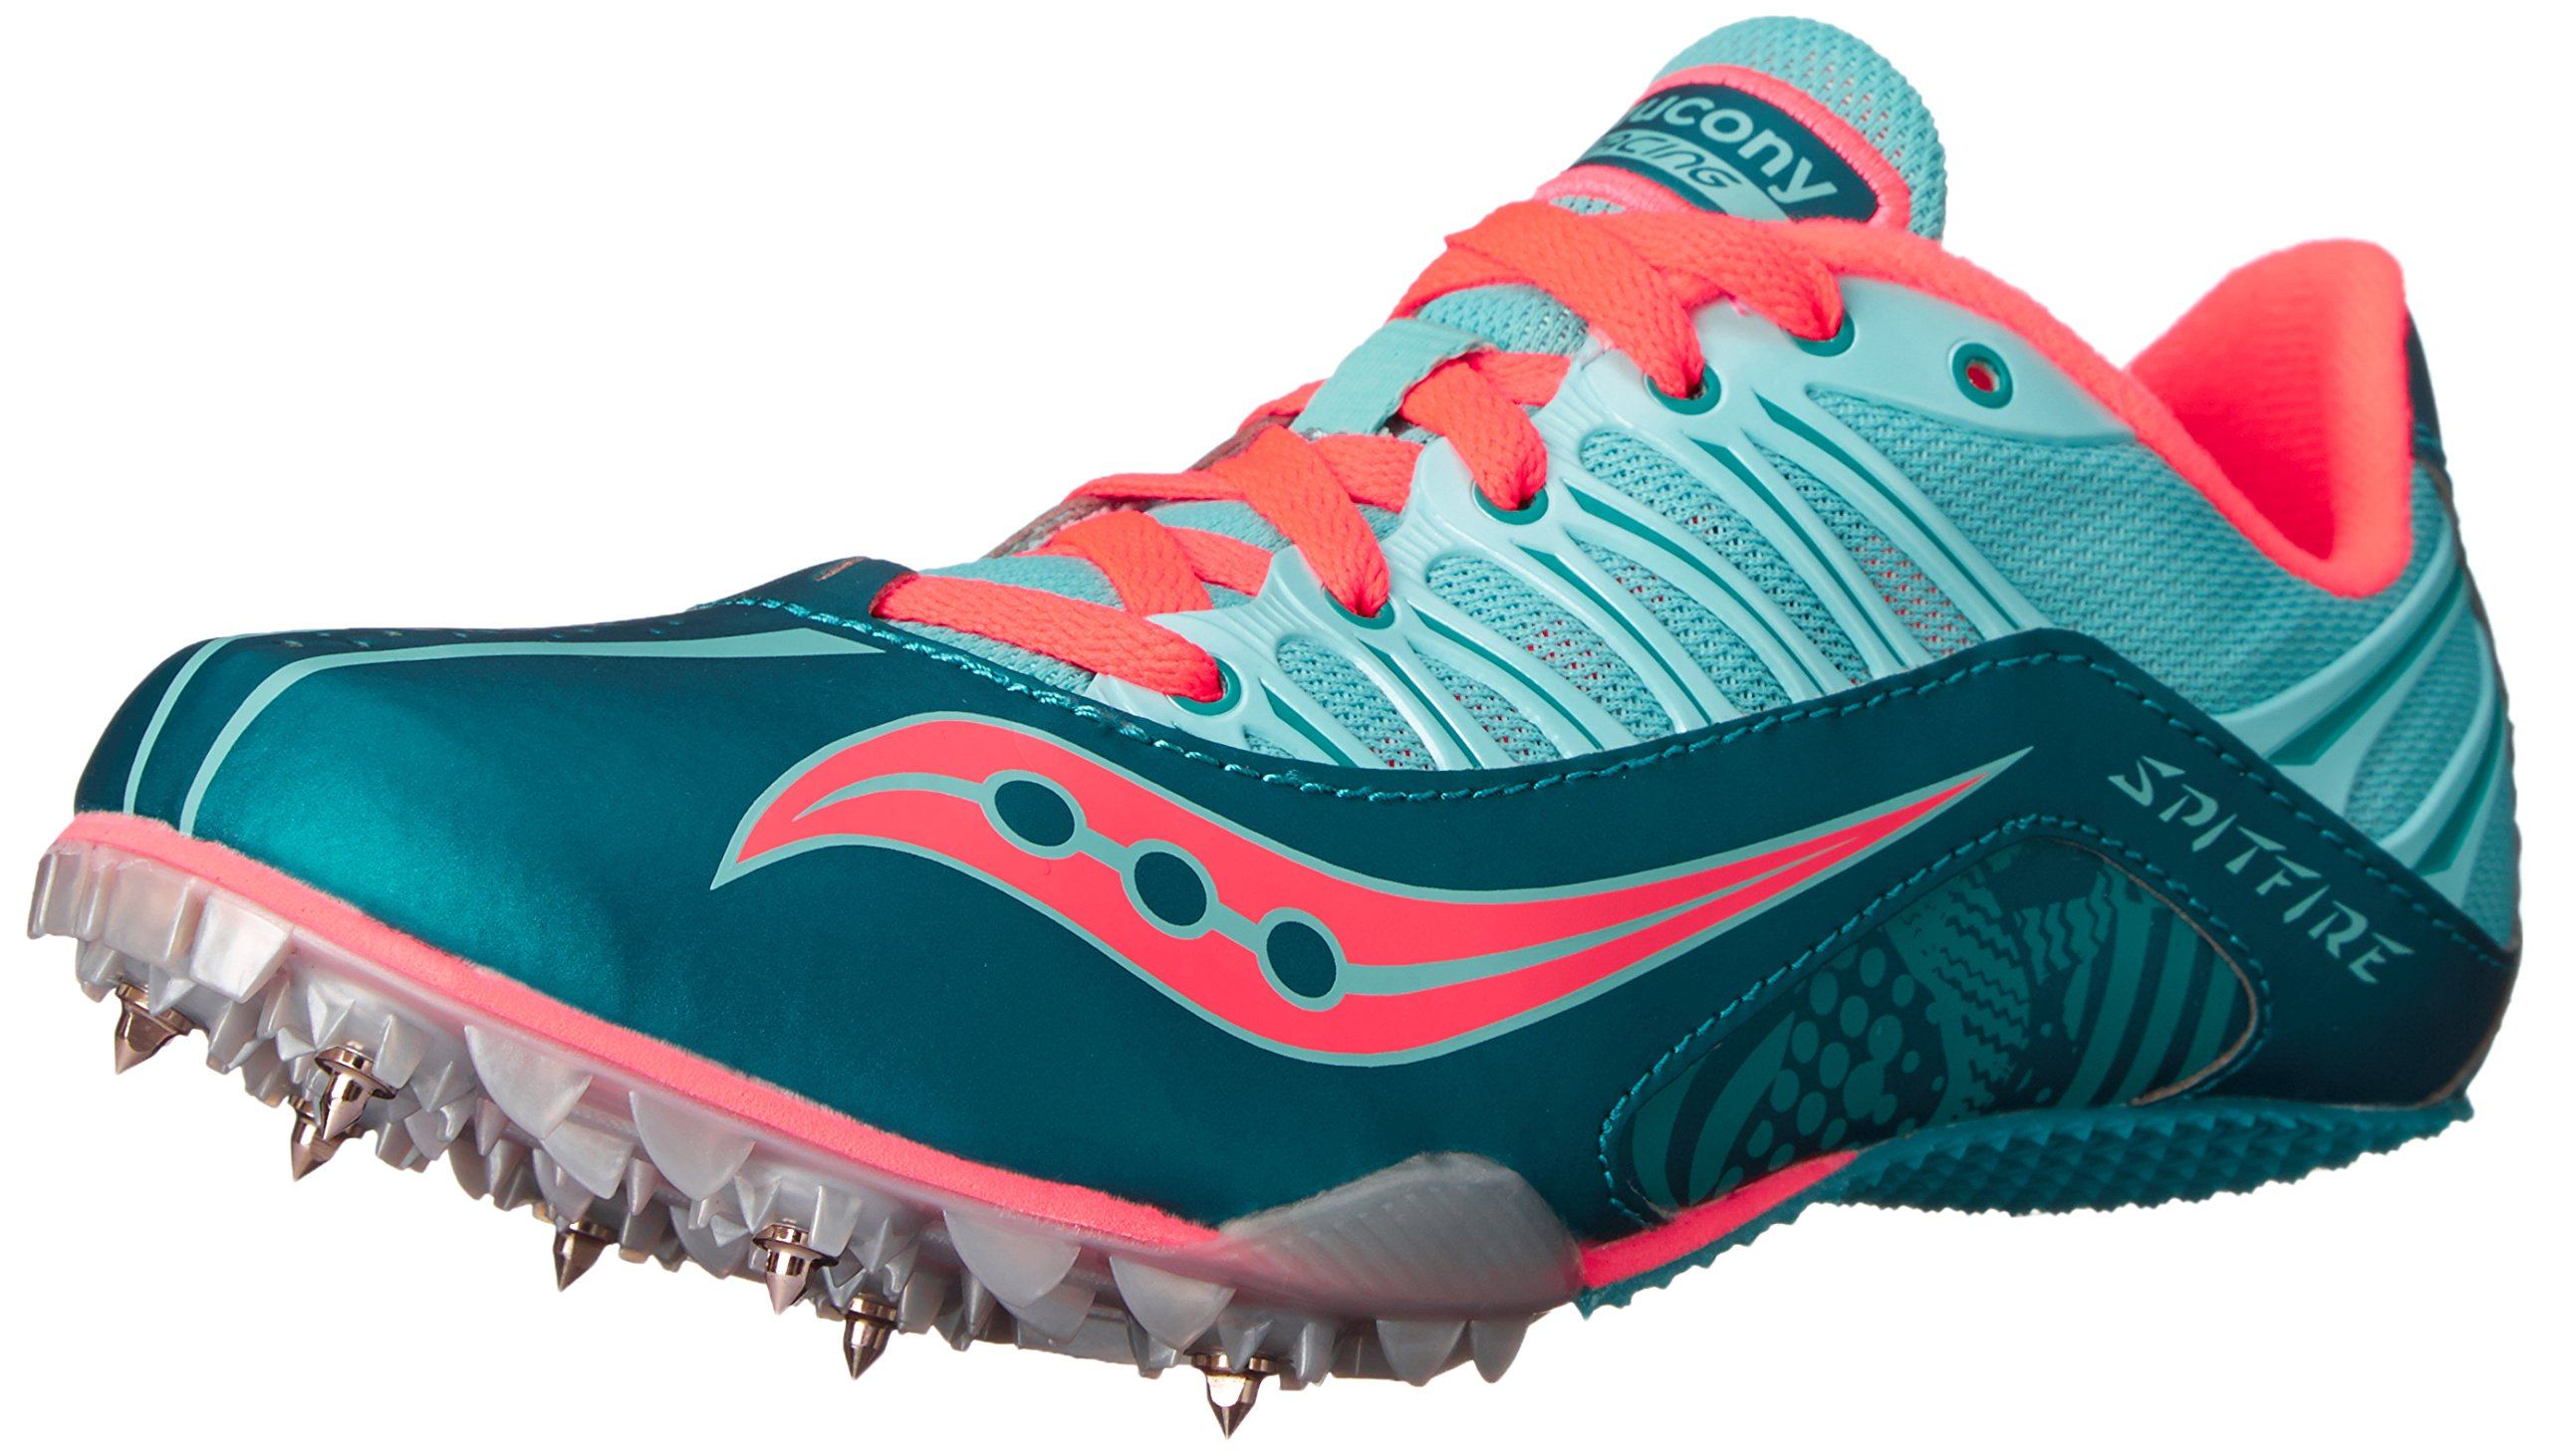 Saucony Women's Spitfire Spike Shoe, Teal/Coral, 6.5 M US by Saucony